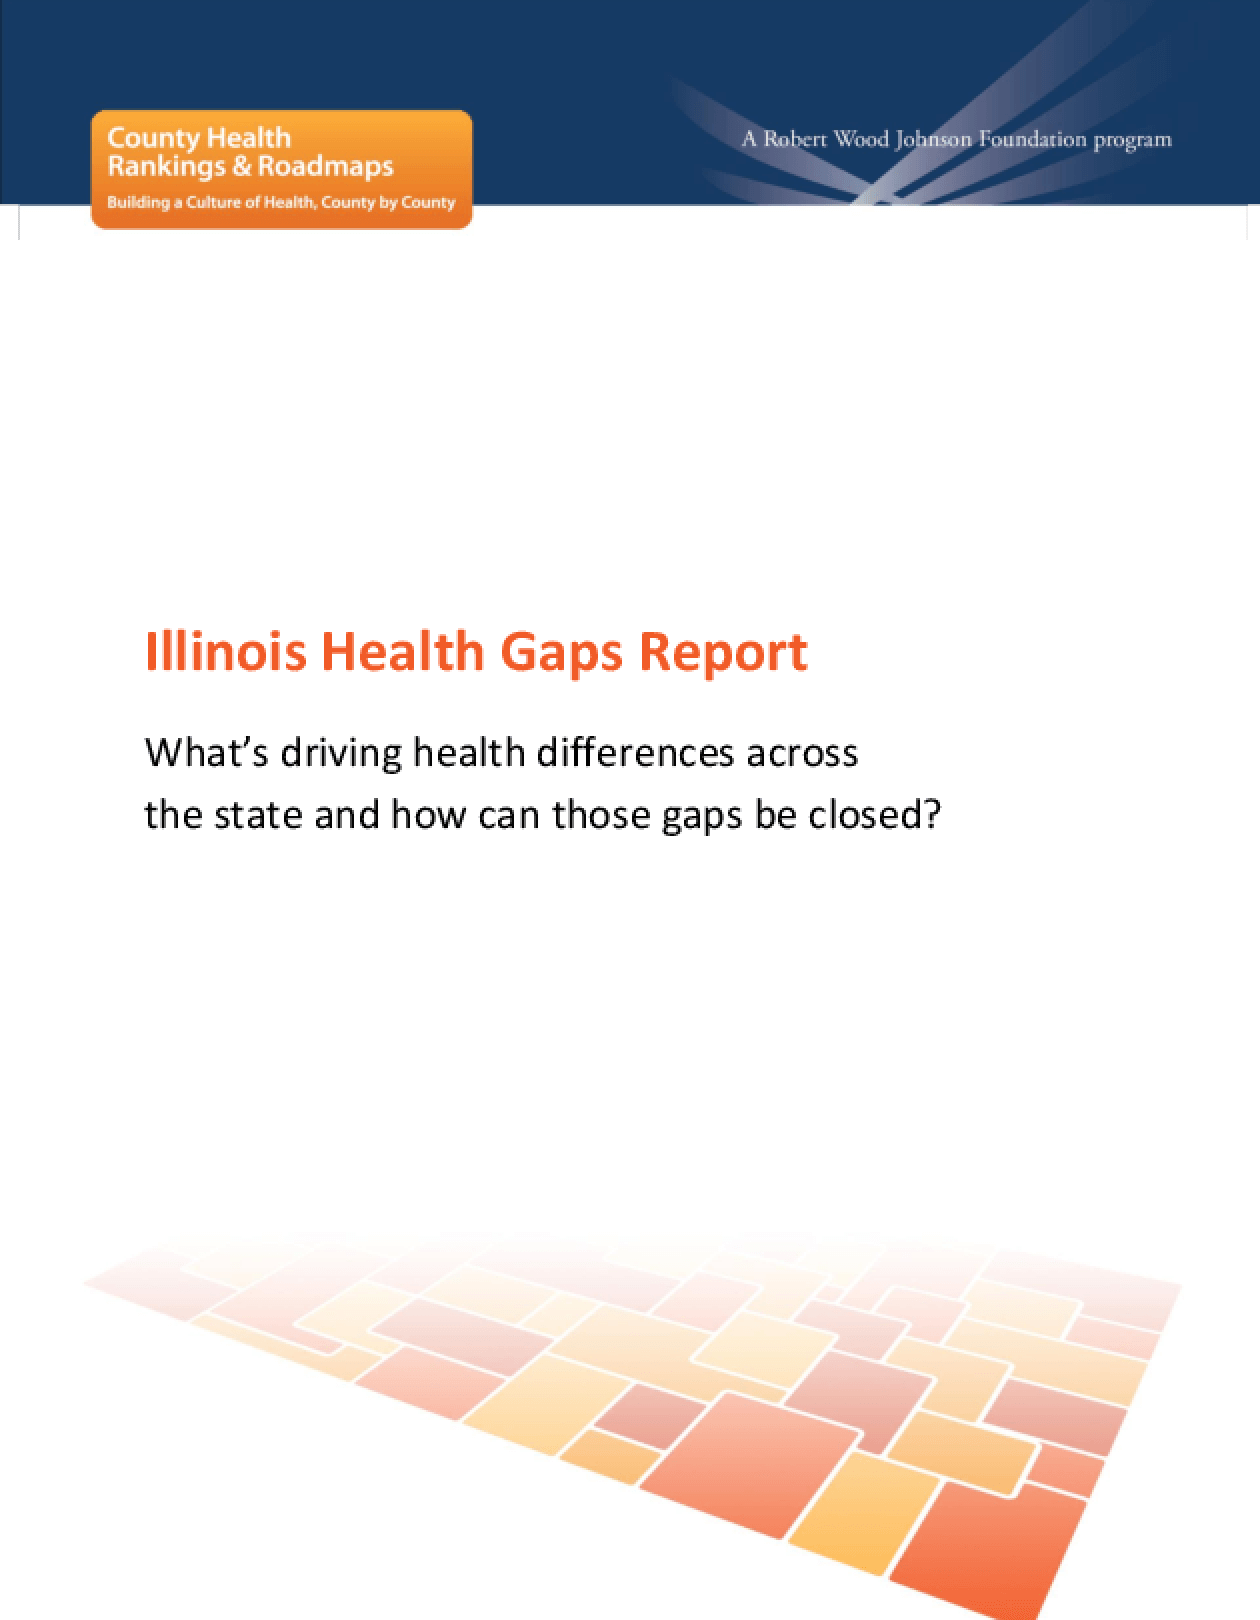 Illinois Health Gaps Report: What's Driving Health Differences Across the State and How Can Those Gaps Be Closed?